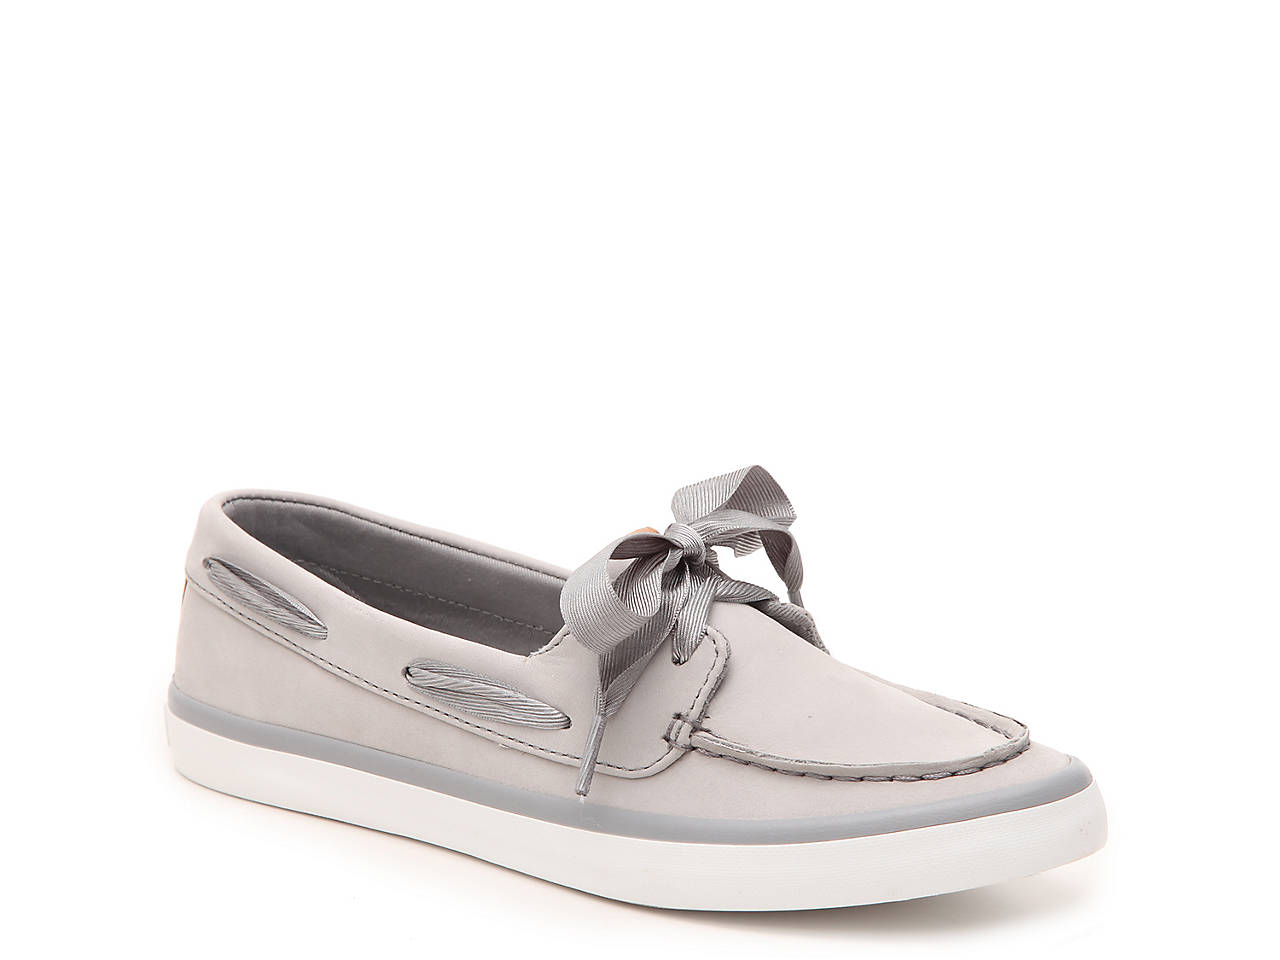 3e09286fe7a4 Sperry Top-Sider Sailor Boat Shoe Women s Shoes